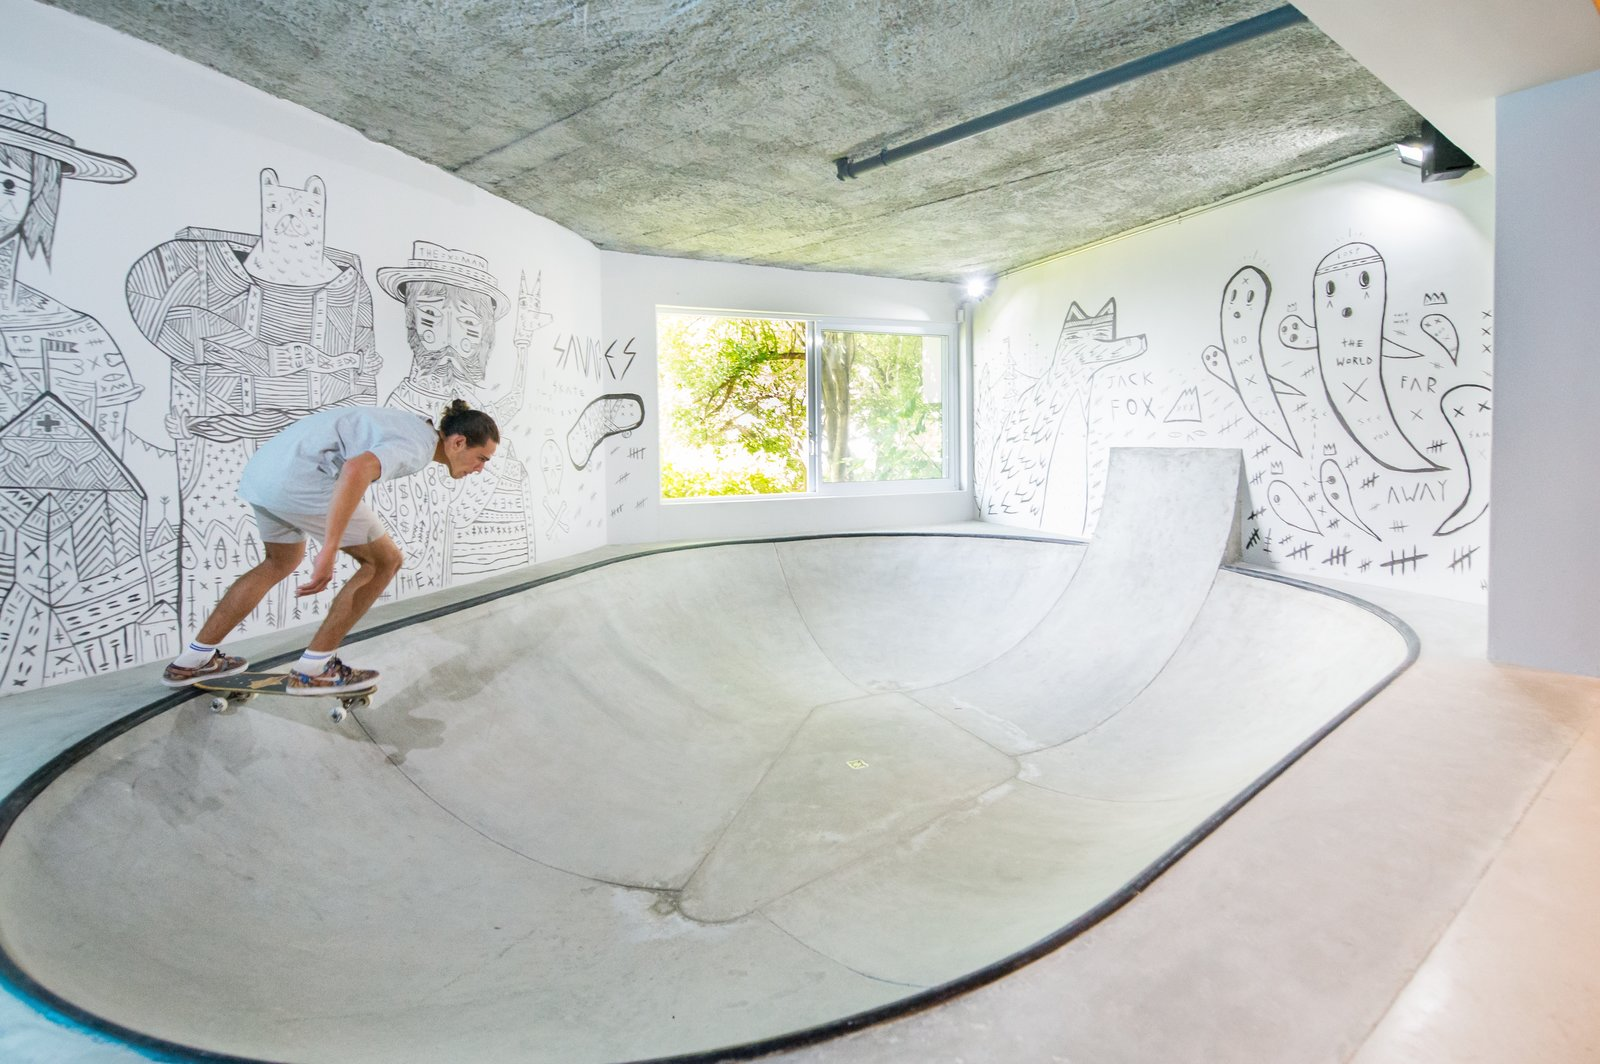 Photo 1 of 6 in A Skateboarding Devotee Gets the Lounge of His Dreams